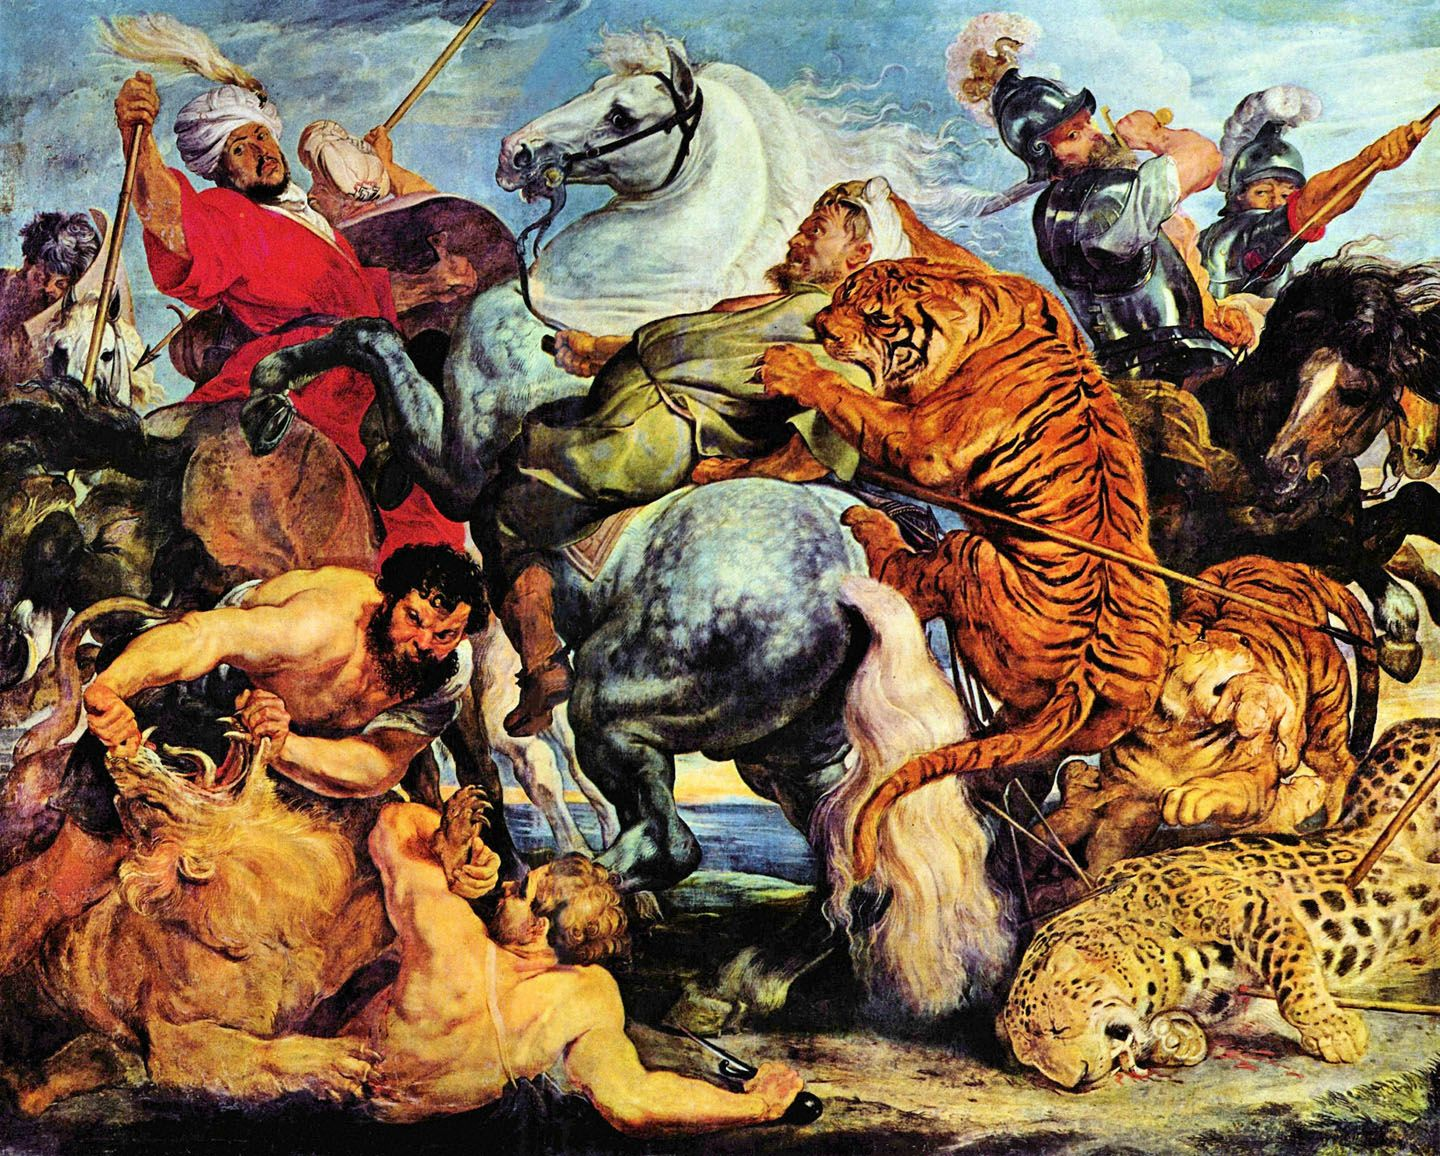 Lion and tiger hunting | Reproduced Fine Art